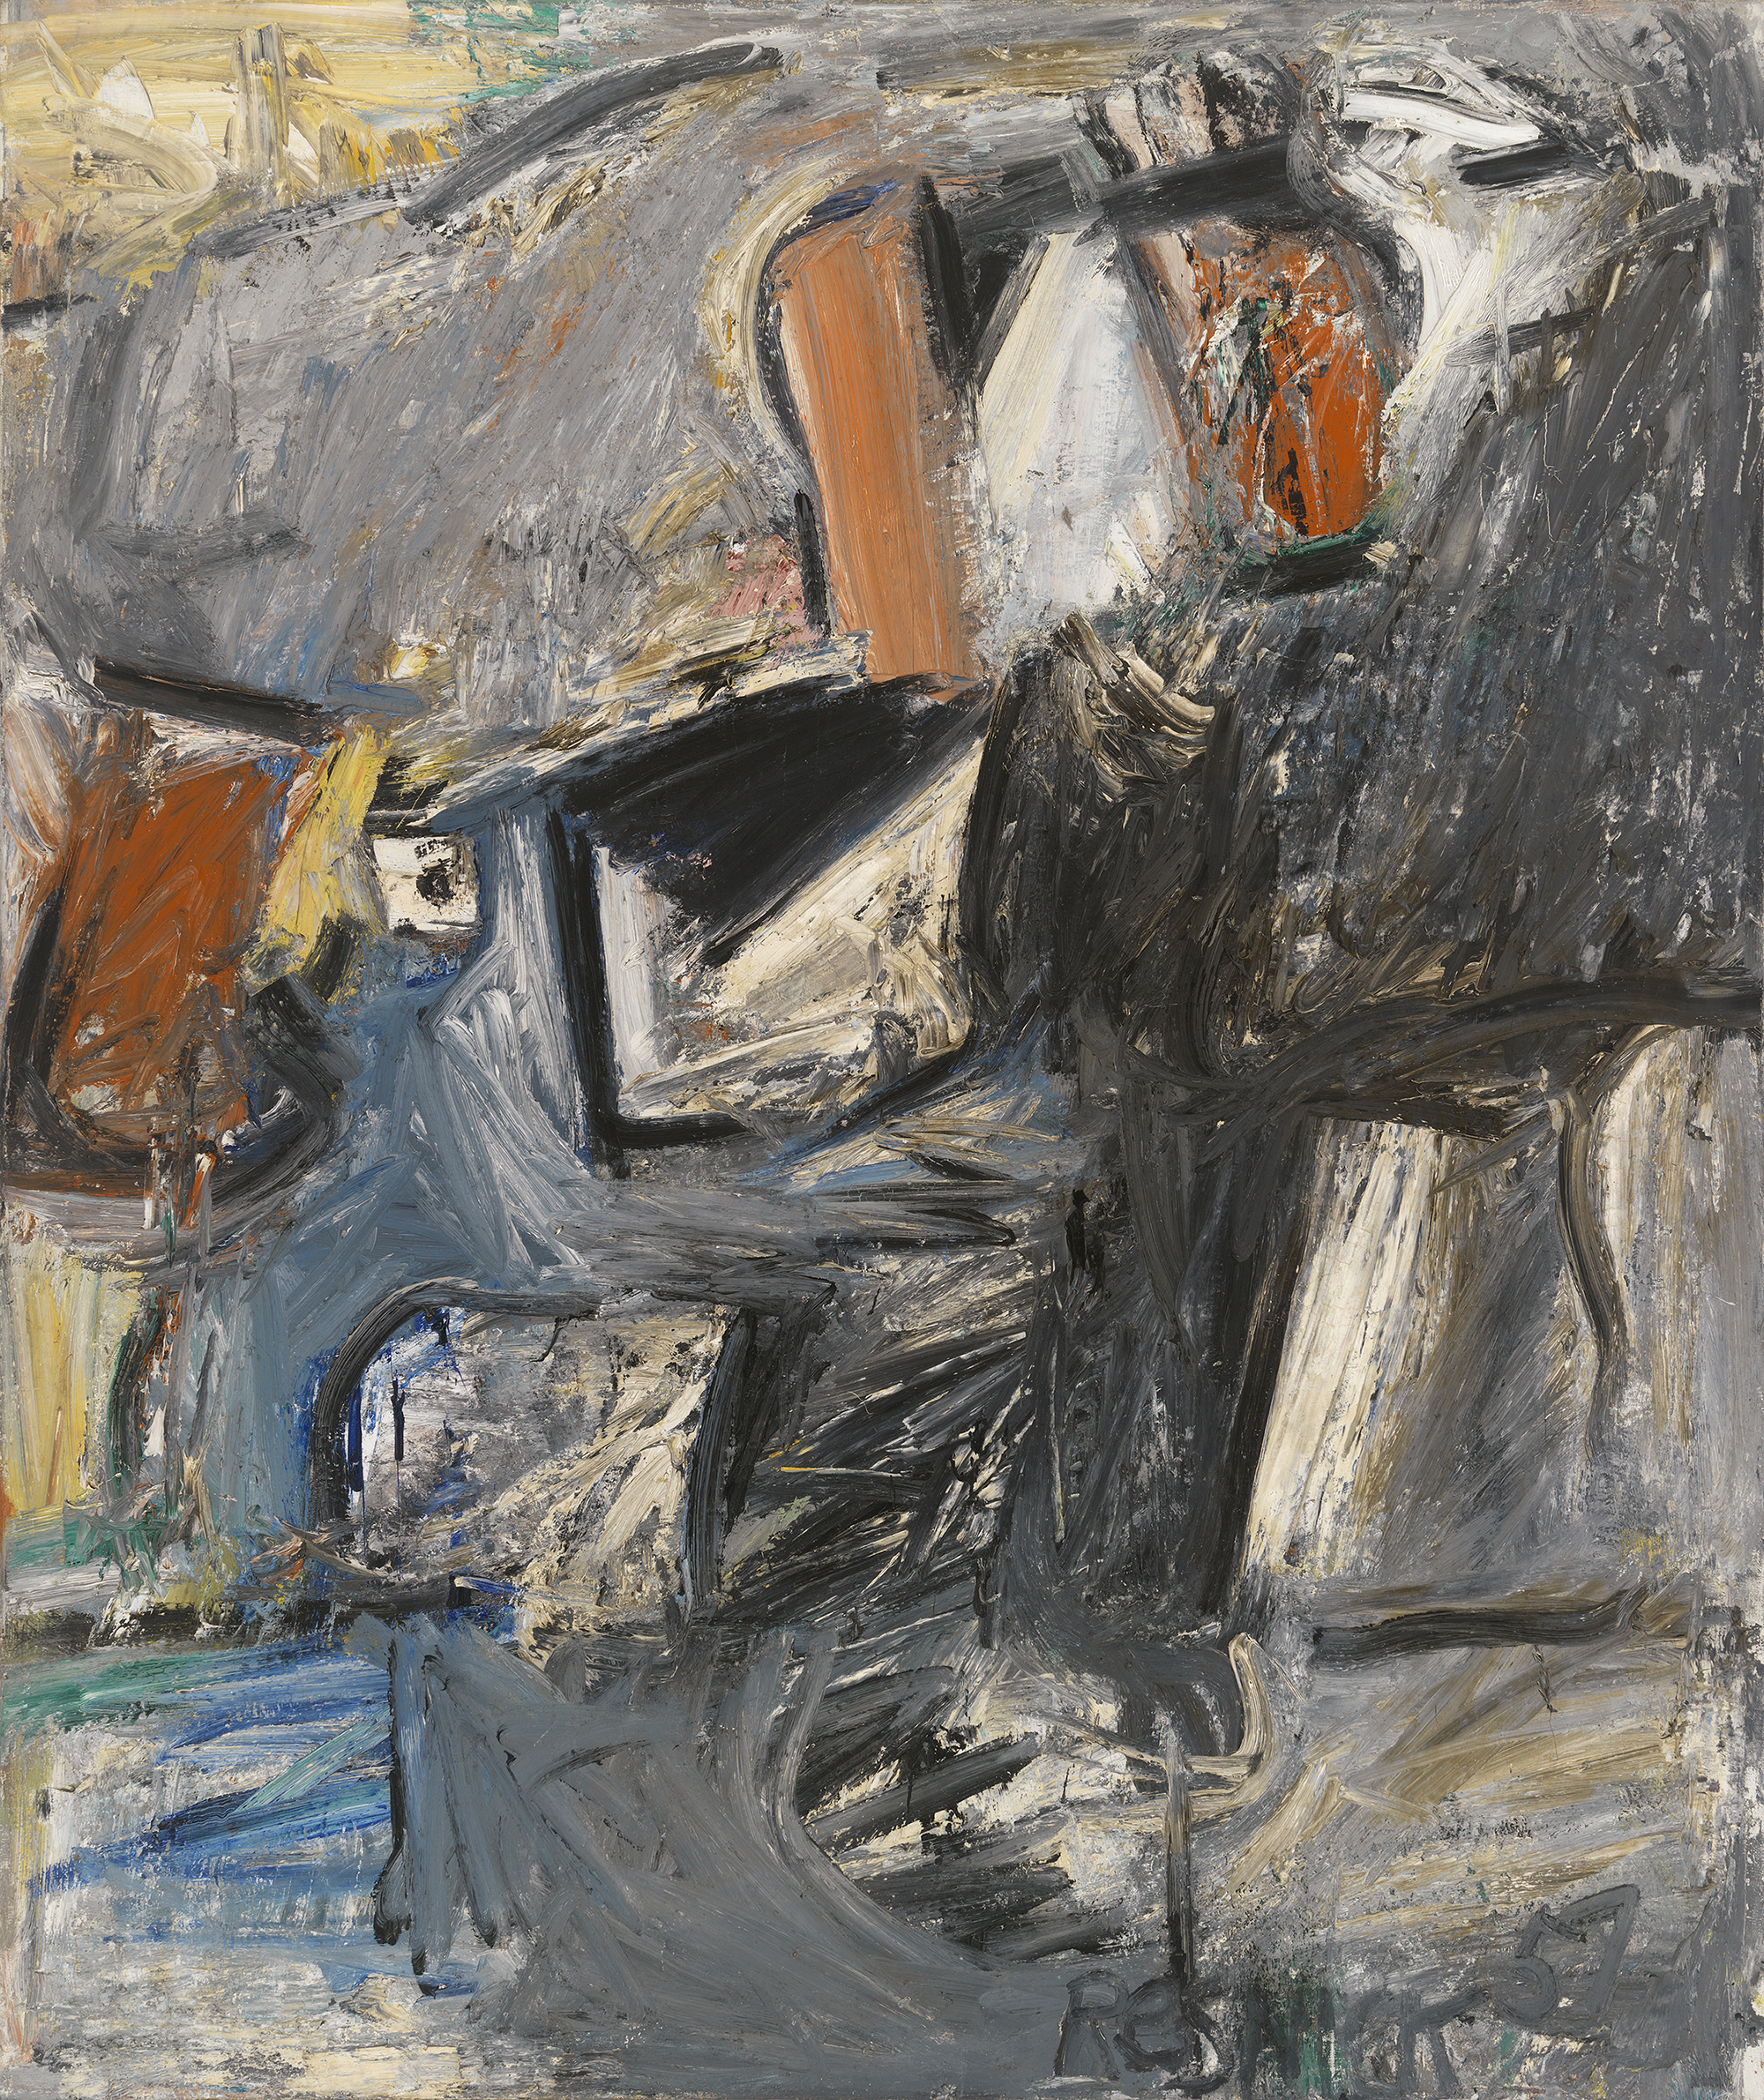 Winged Horse,   Oil on canvas, 1957, 70 x 59 inches